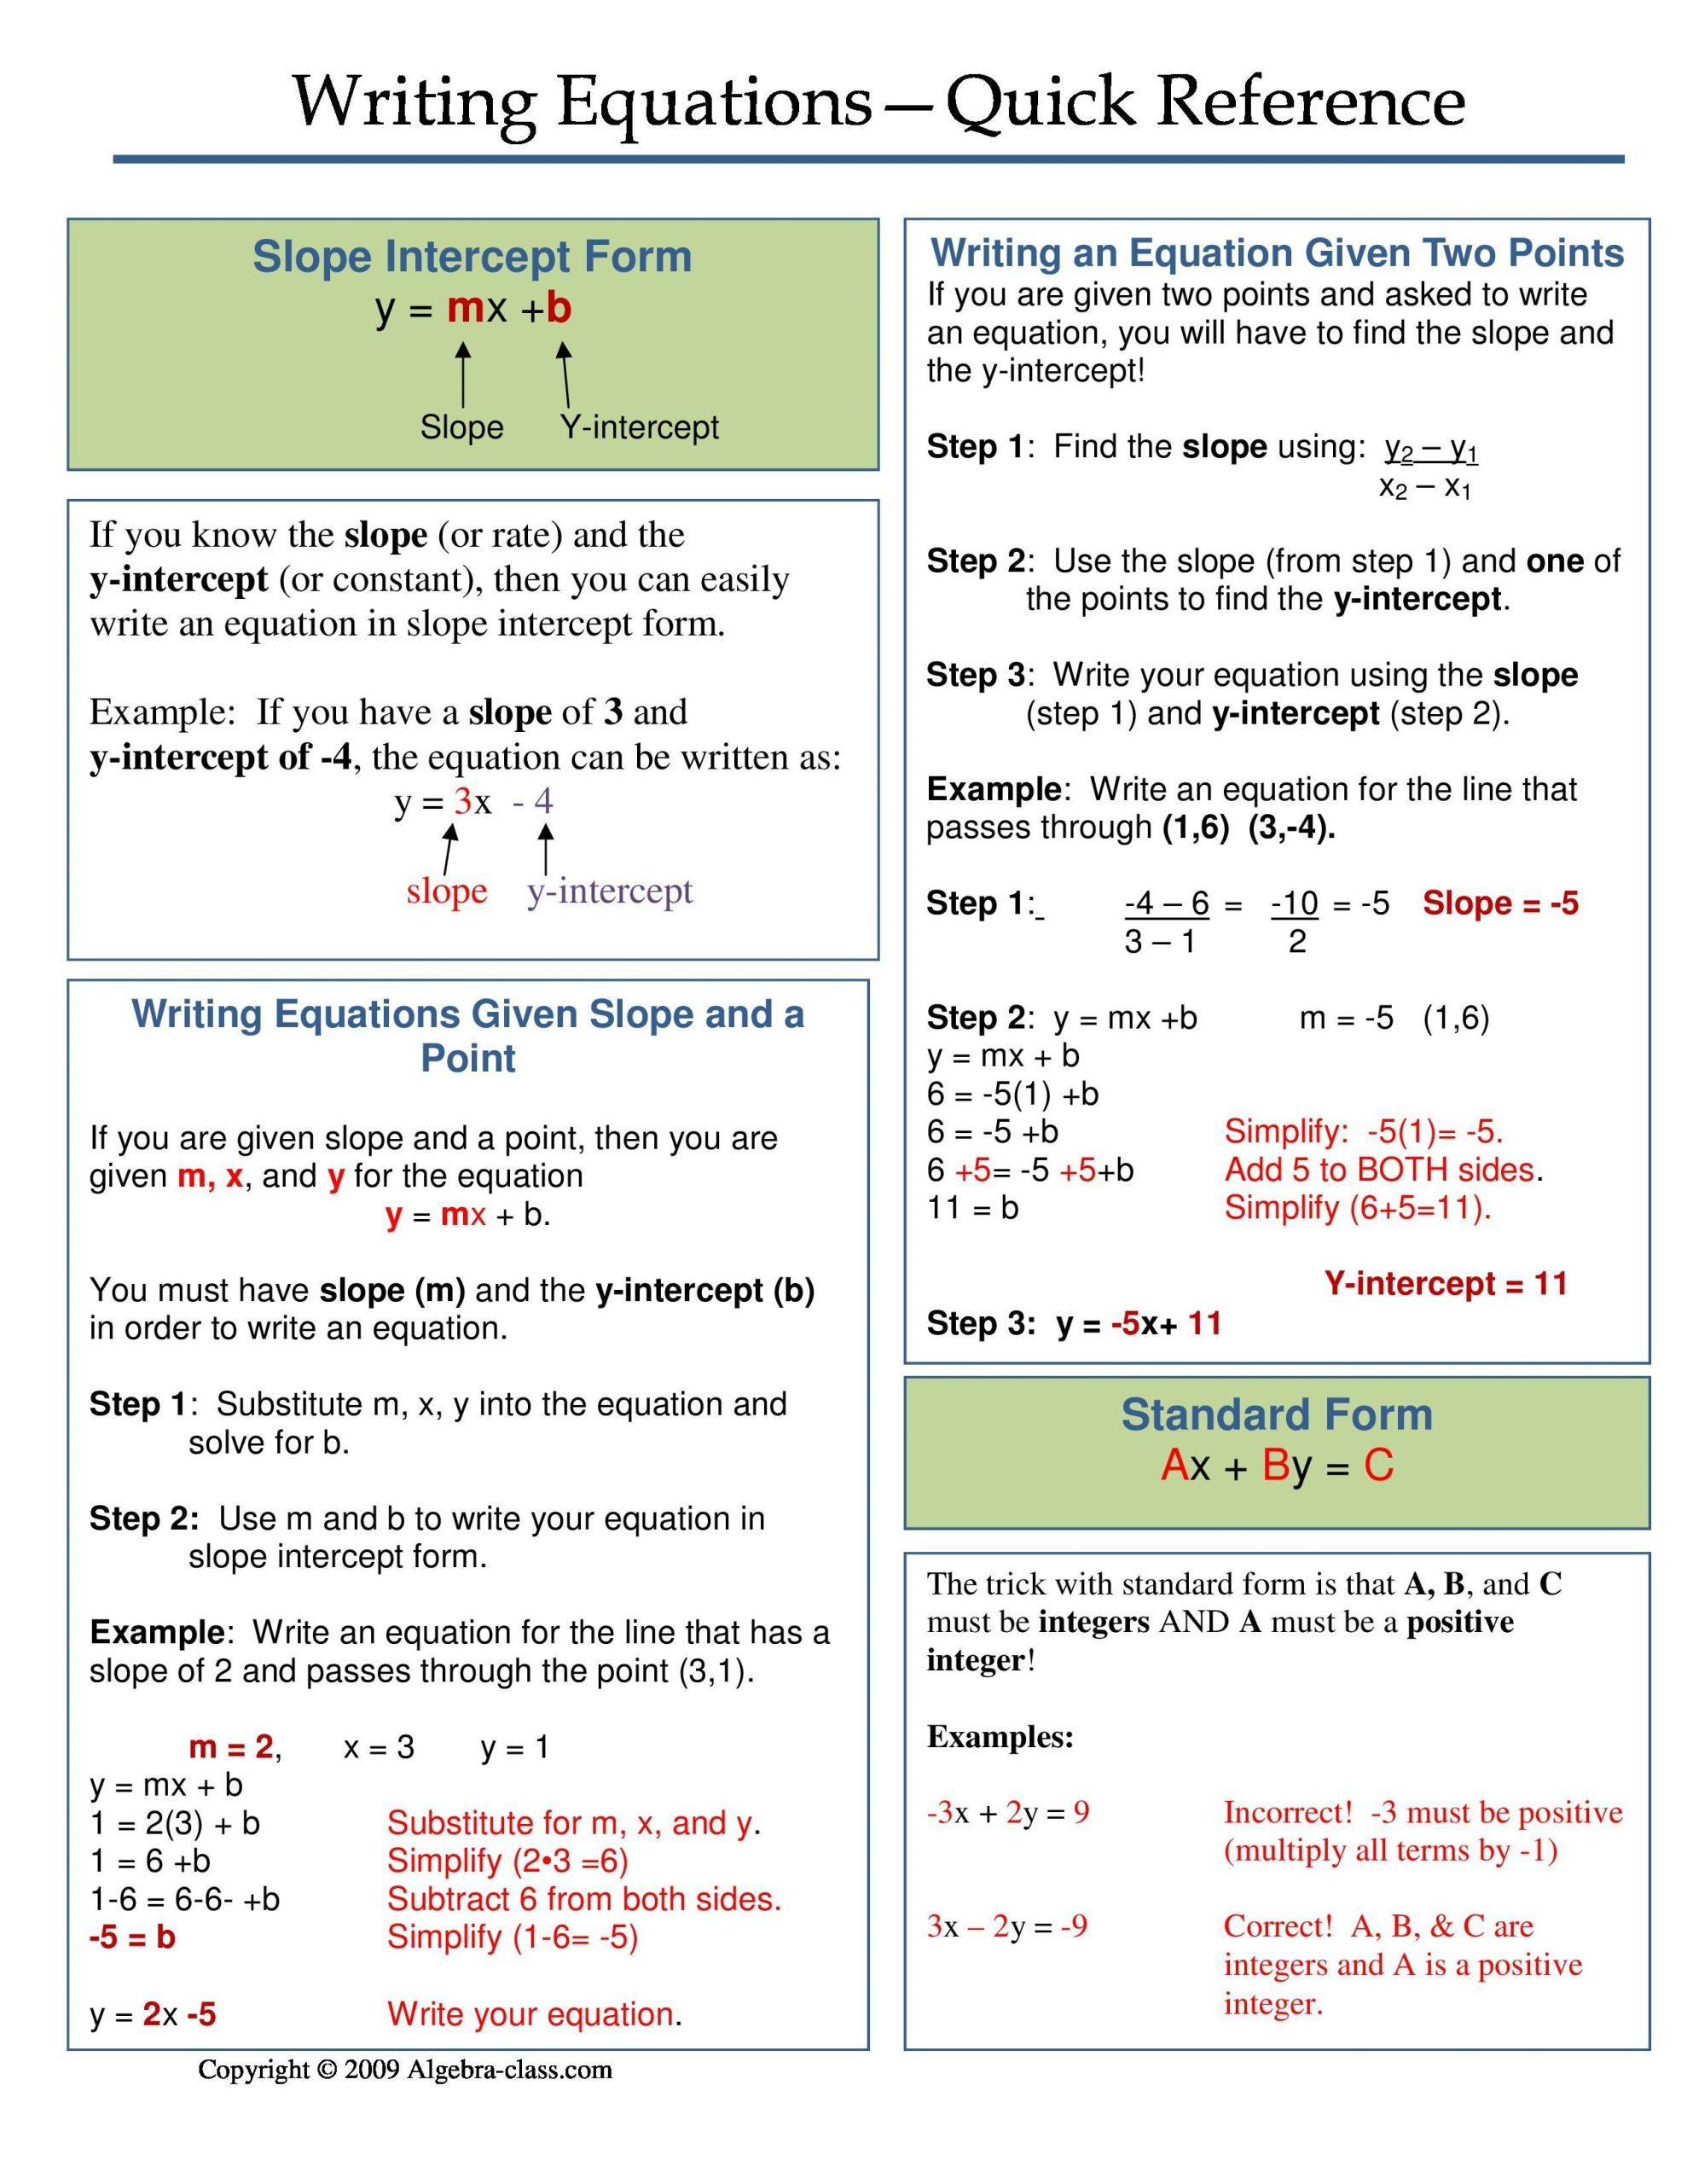 Writing Equations From Tables Worksheets E Page Notes Worksheet for Writing Equations Unit